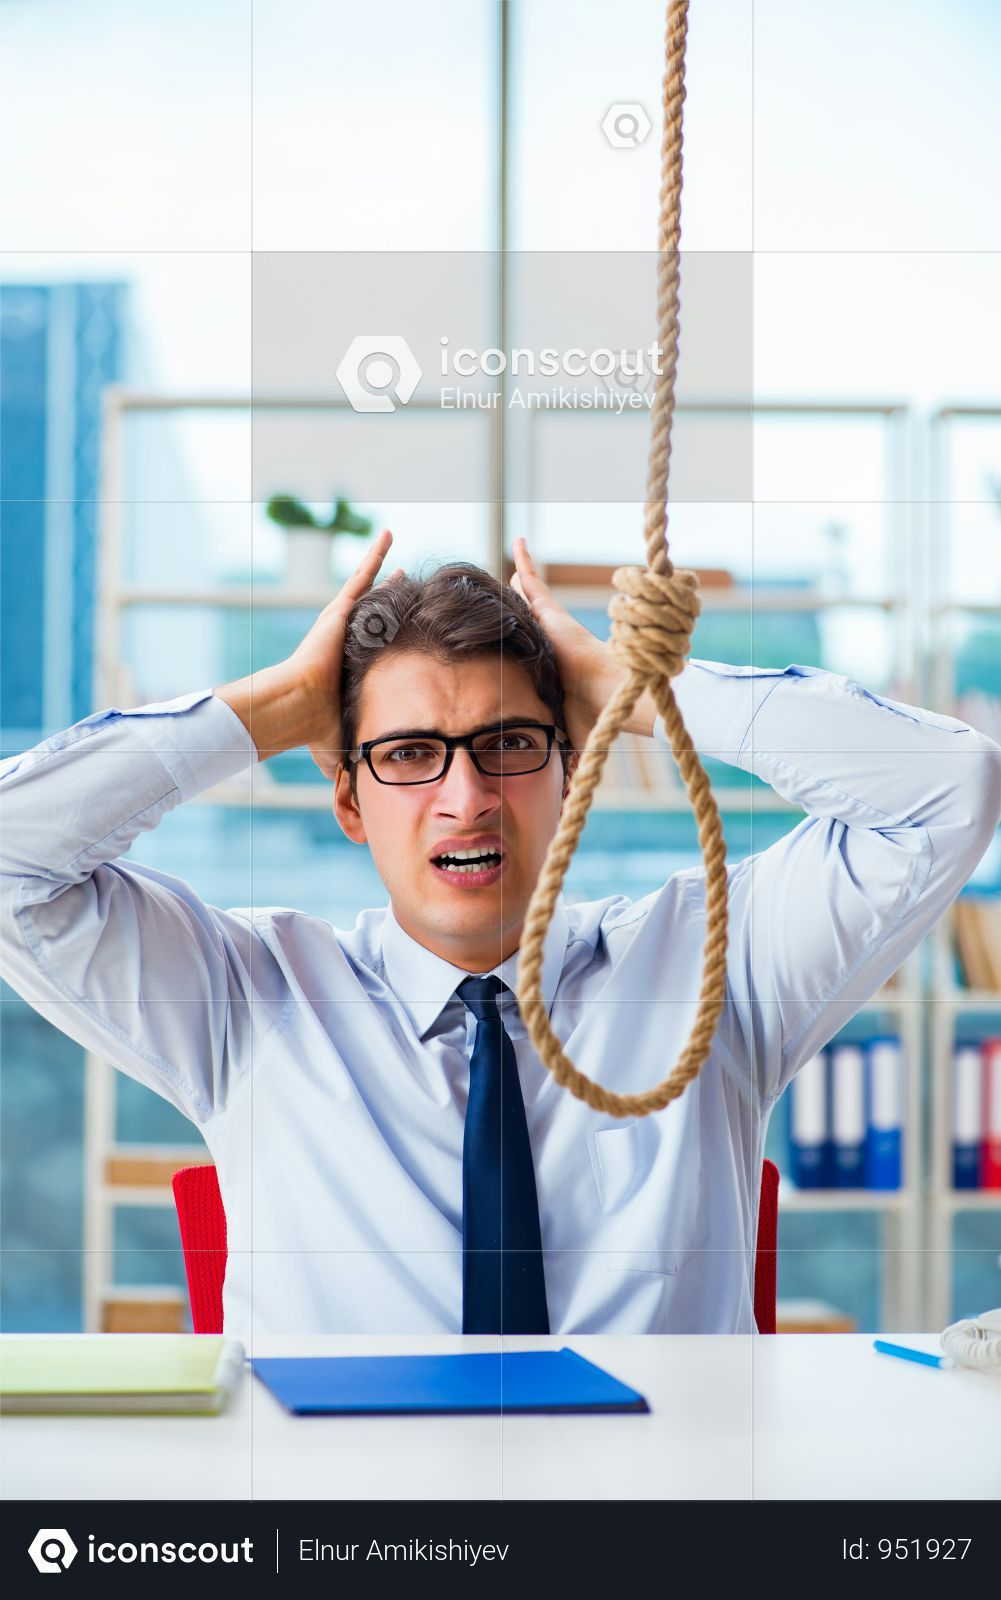 Premium Unhappy Businessman Thinking Of Hanging Himself In The Office Photo Download In Png Jpg Format Business Man Photo The Office